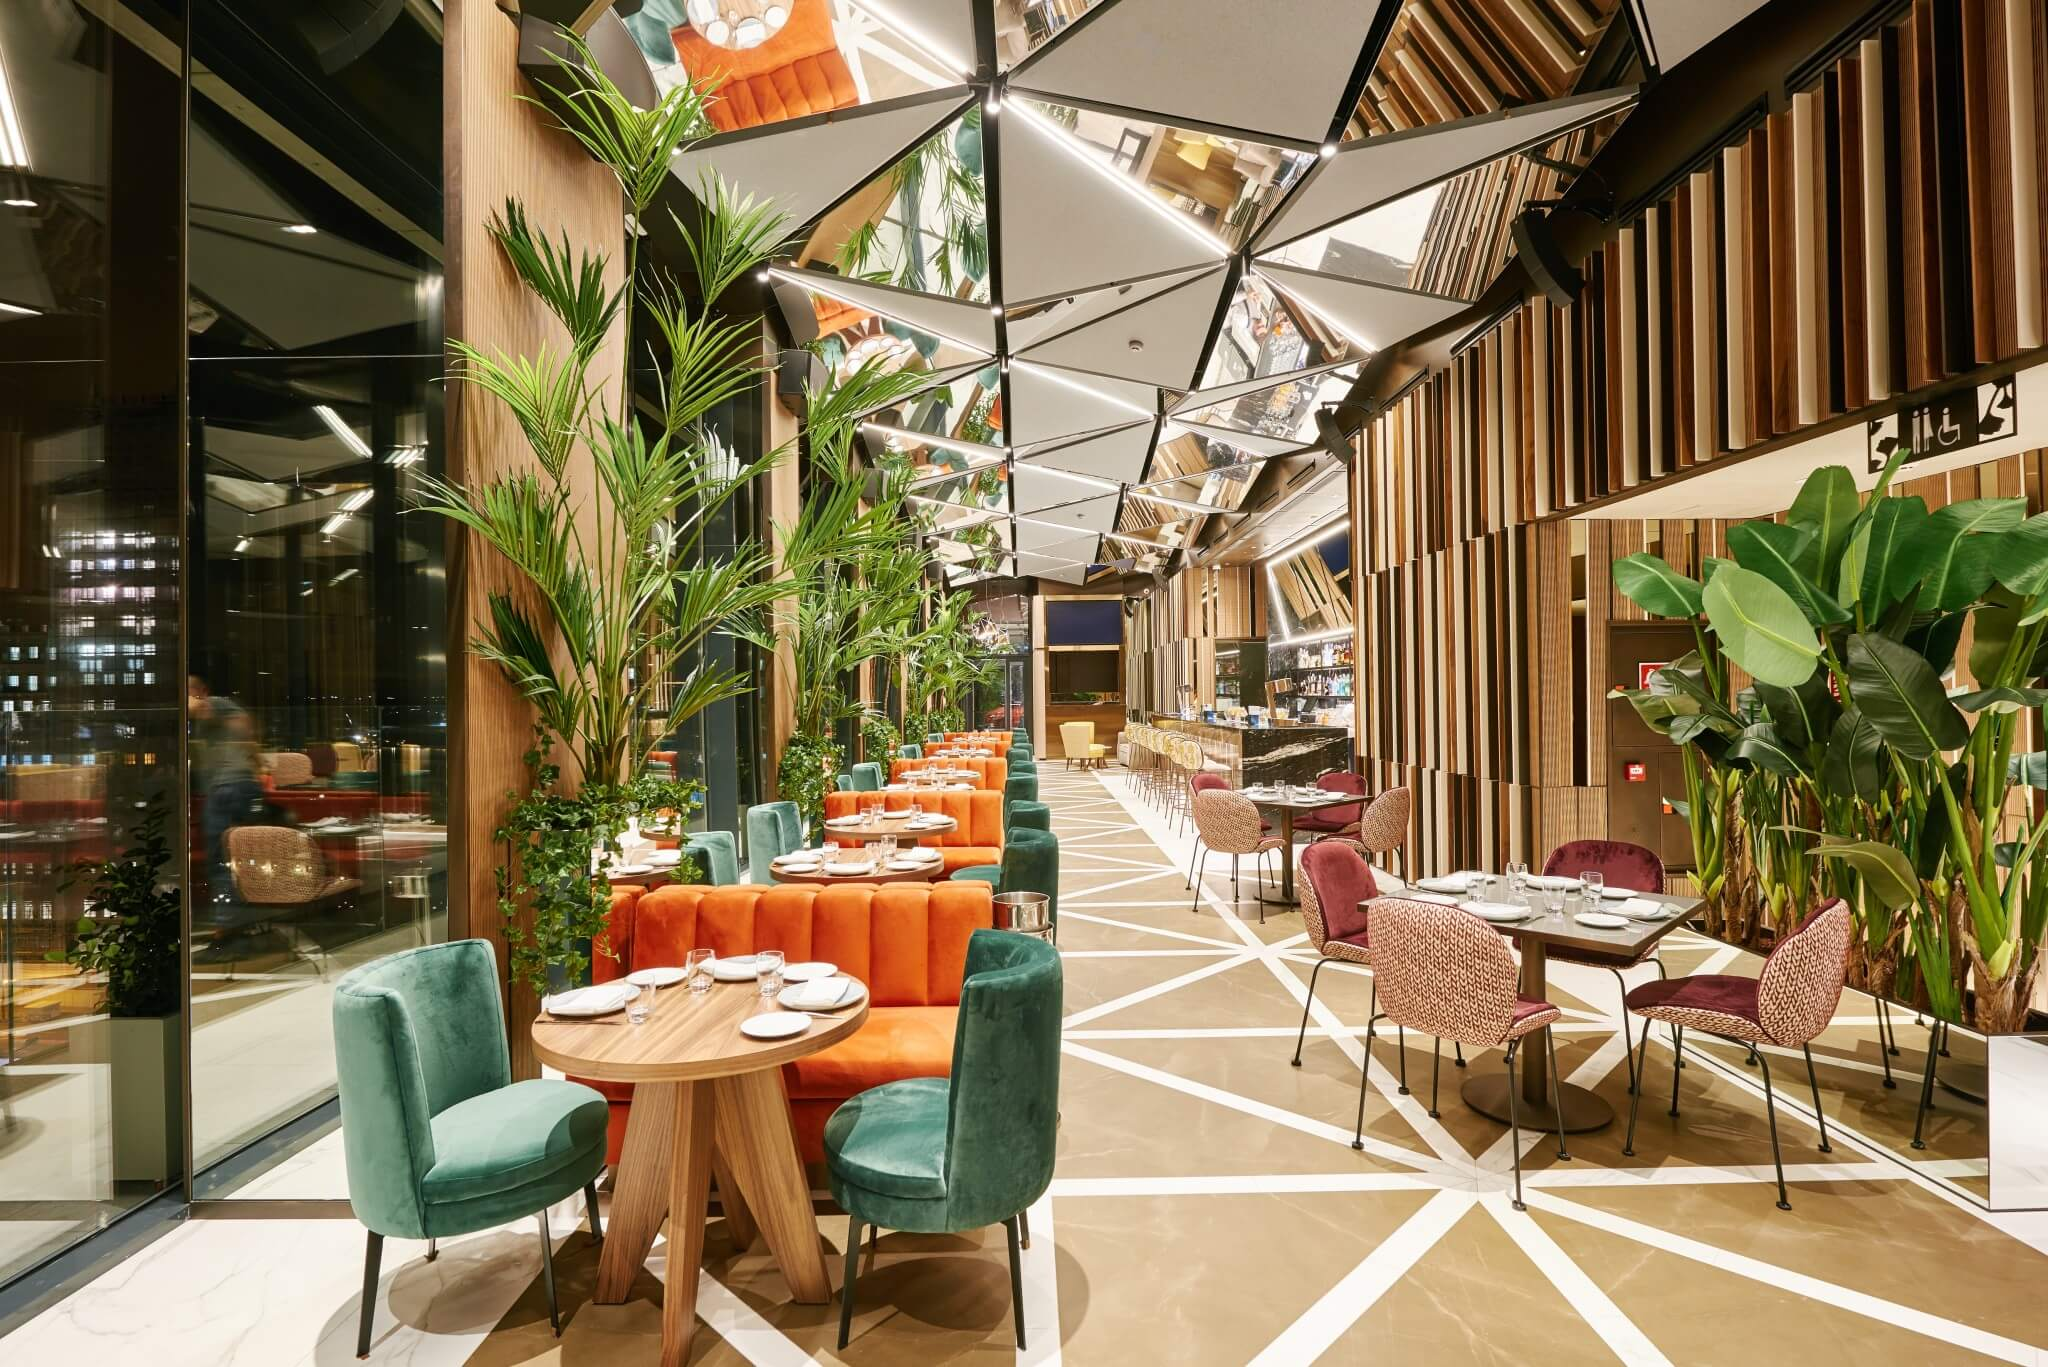 Ginkgo restaurante sky bar vp plaza espa a design madrid for Sky design hotel